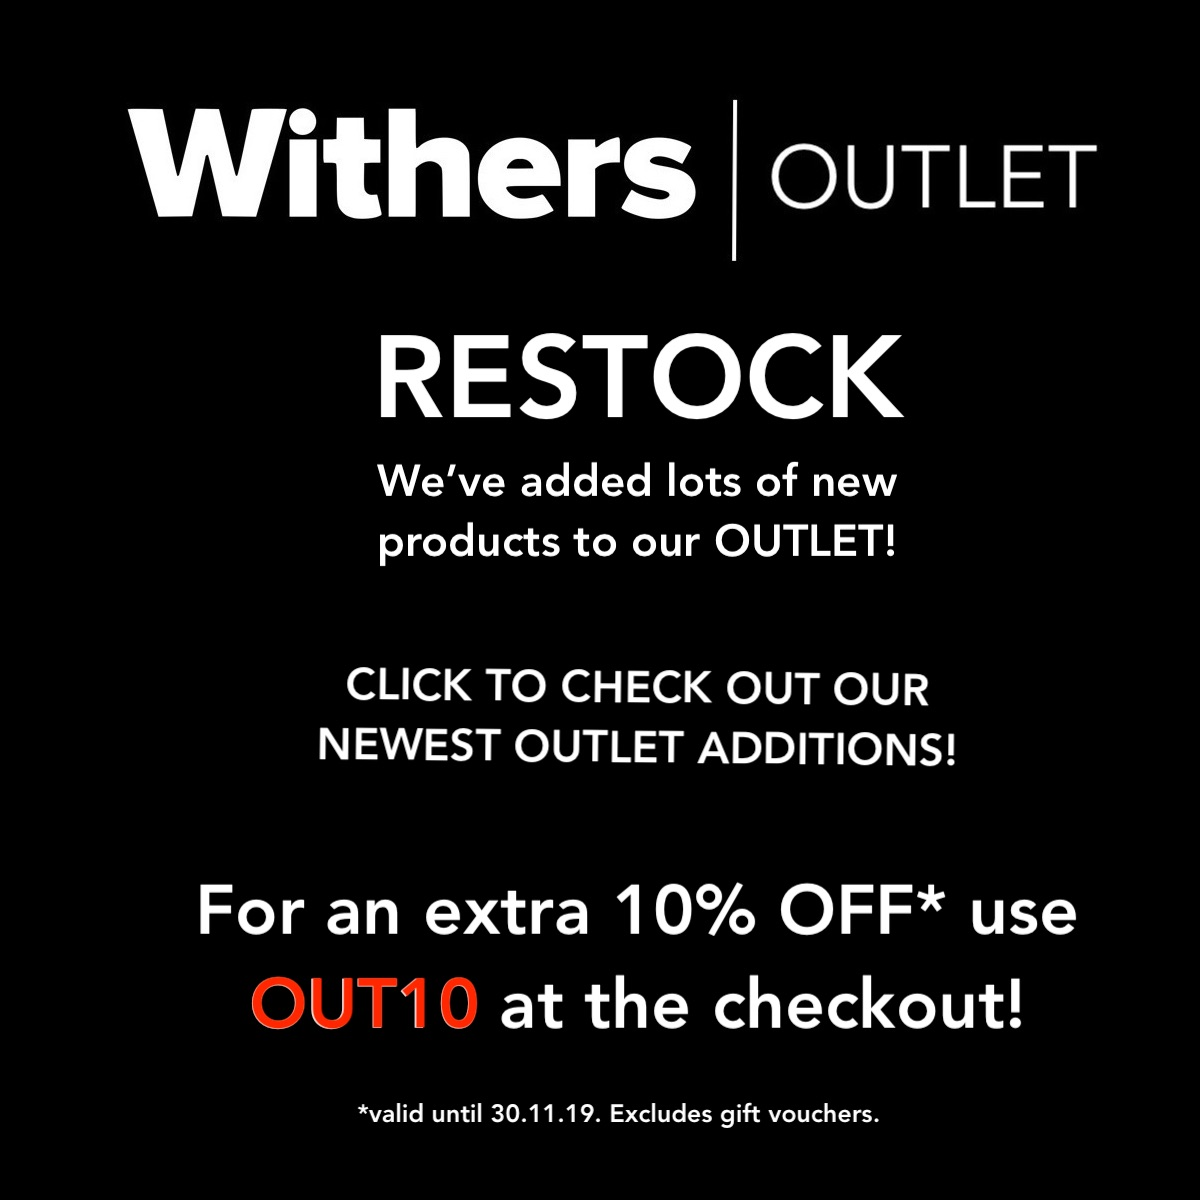 Withers Outlet Restock